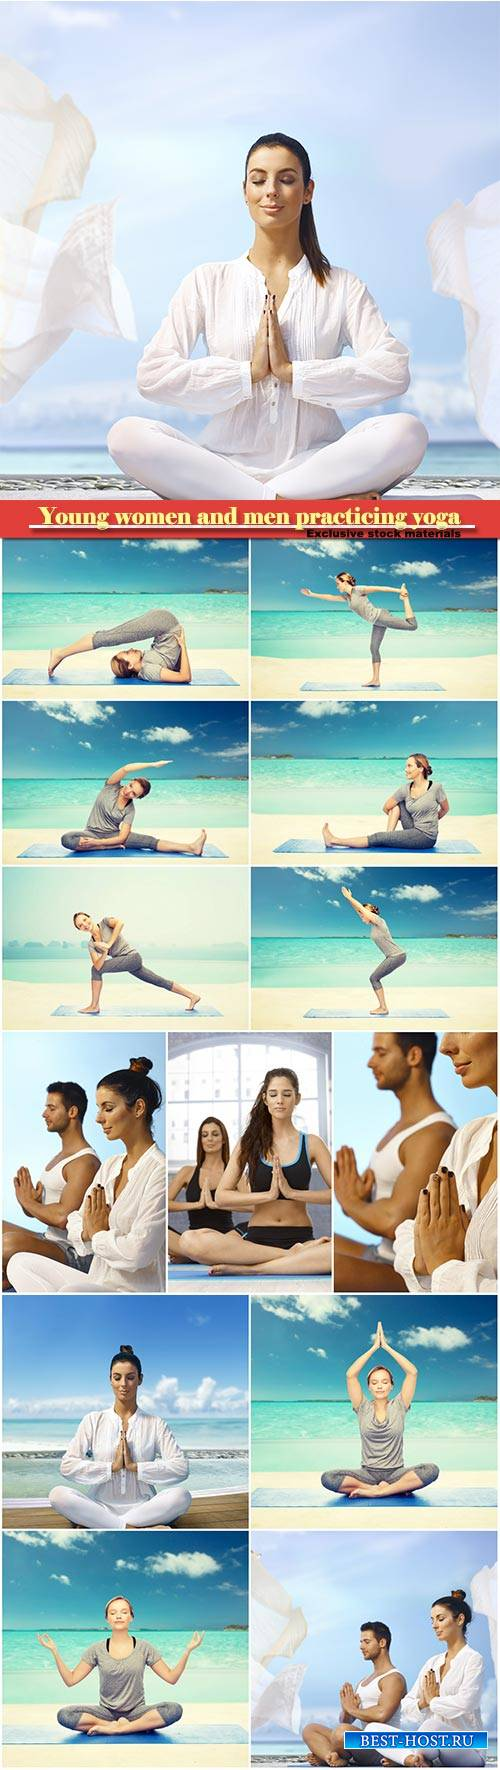 Young women and men practicing yoga